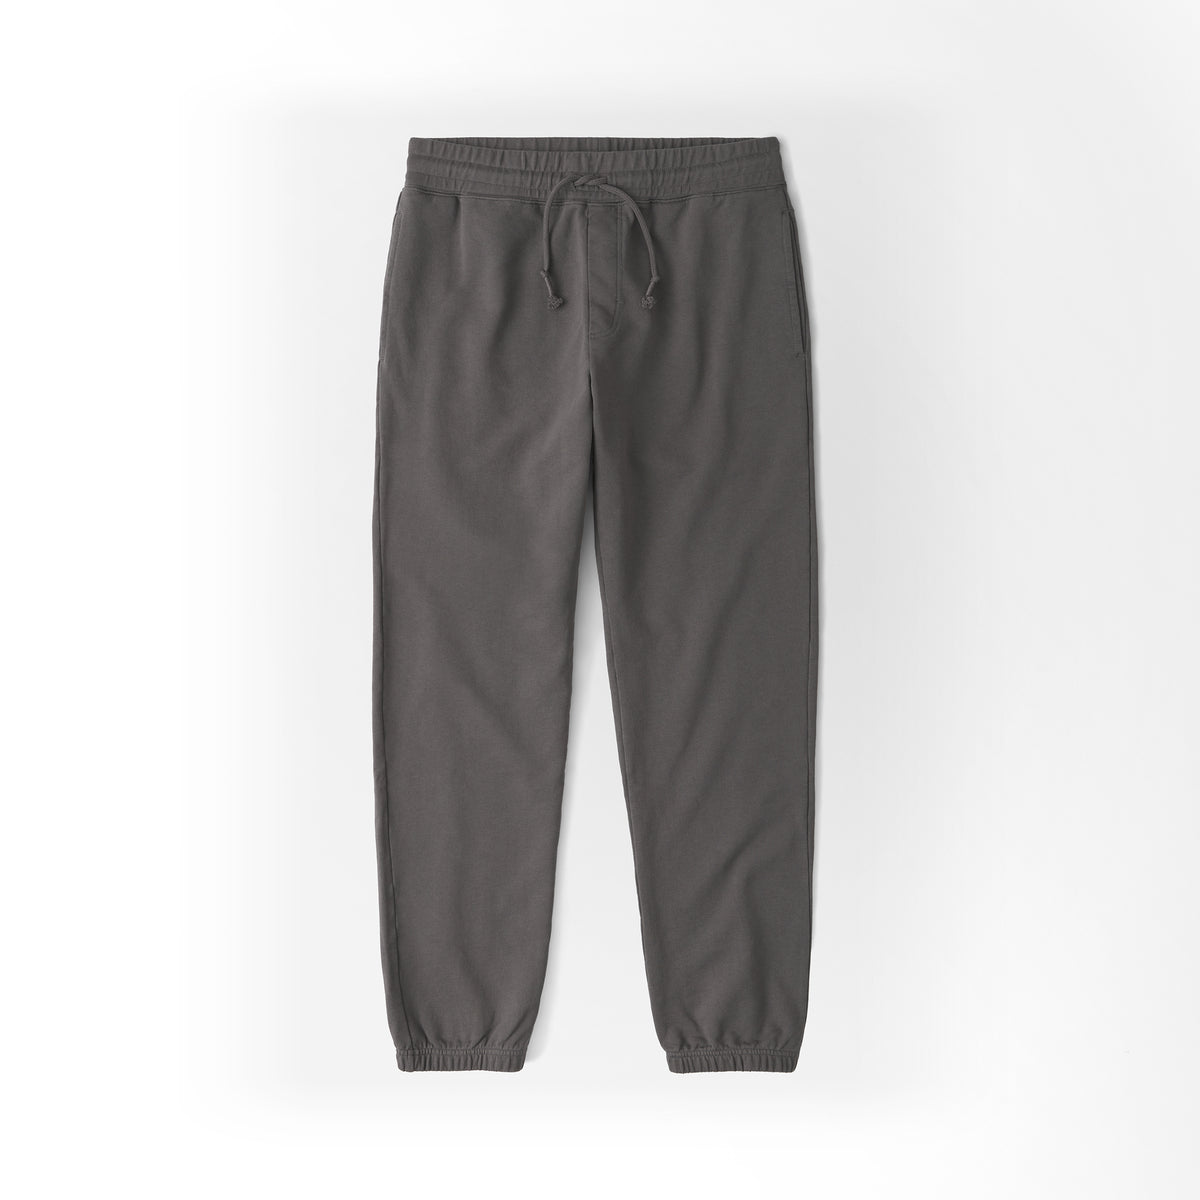 Sweatpant in Charcoal made from organic cotton - Alternate Men - Alternate Women